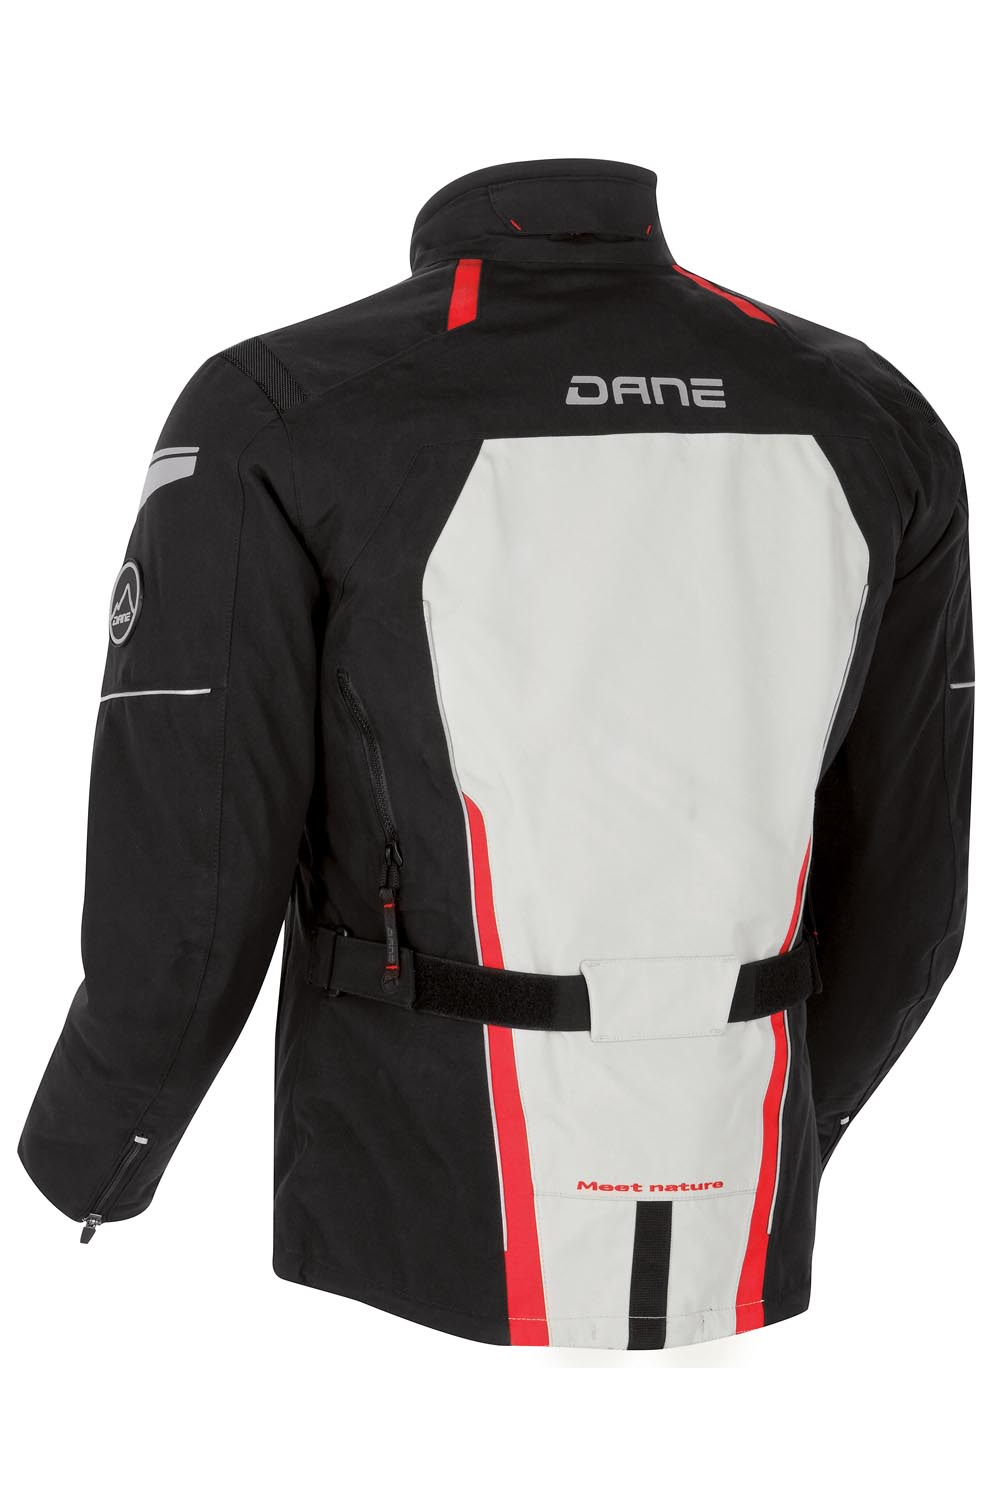 dane osted gore tex pro motorradjacke im motoport onlineshop. Black Bedroom Furniture Sets. Home Design Ideas